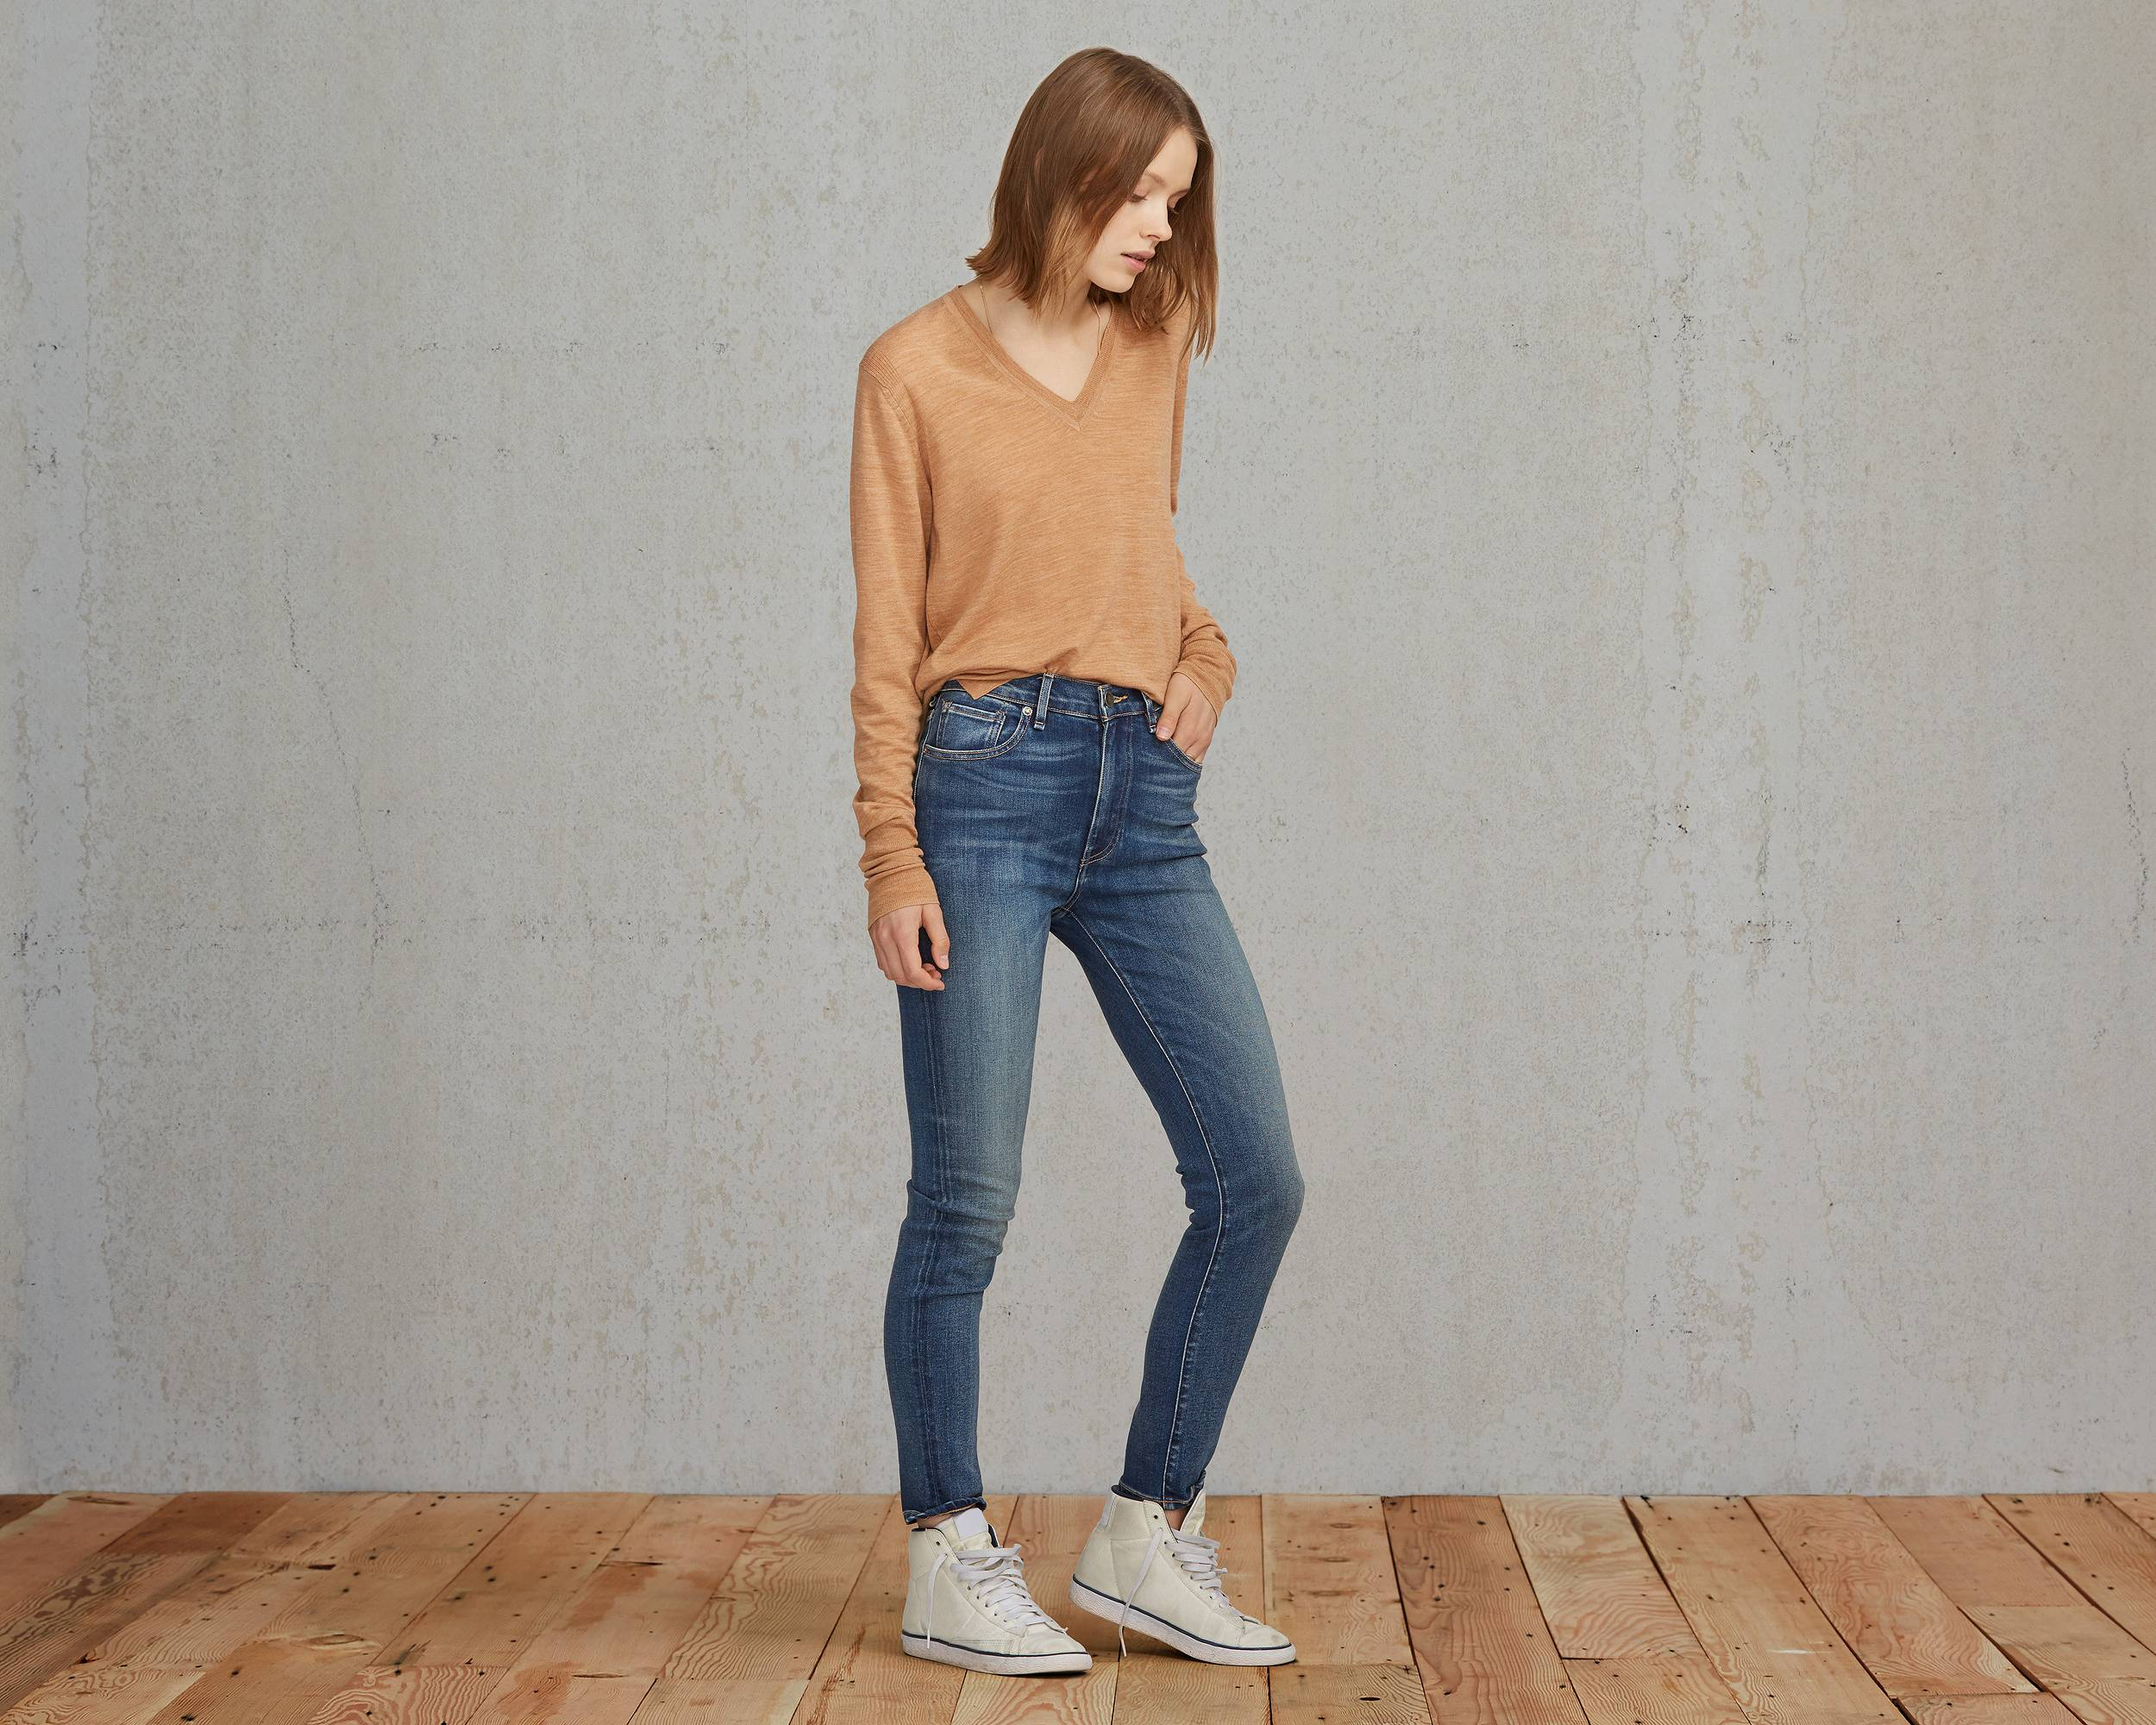 Sliver High Rise Skinny Jeans | Medium Worn |Levi's® United States ...